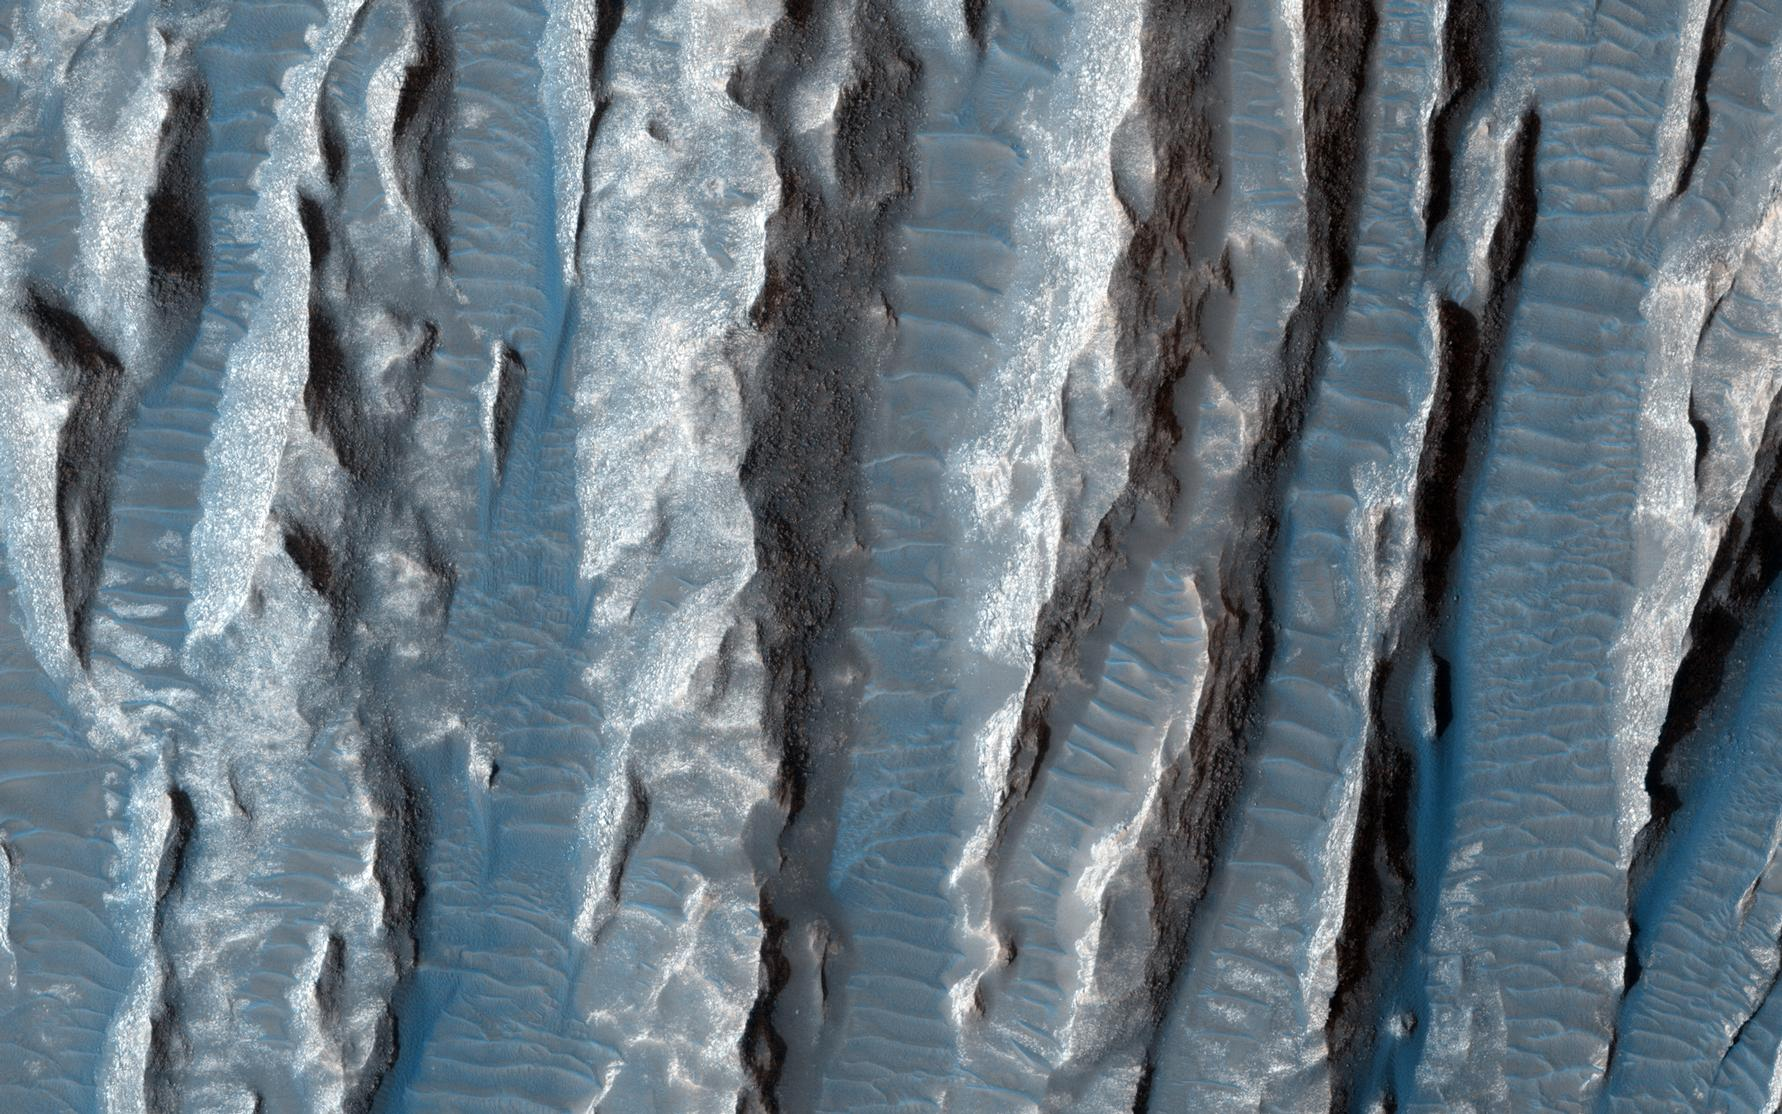 This view of Martian surface features shaped by effects of winds was captured by the HiRISE camera on NASA's Mars Reconnaissance Orbiter on Jan. 4, 2015.  The spacecraft has been orbiting Mars since March 2006. On Feb. 7, 2015, it completed its 40,000th orbit around Mars.